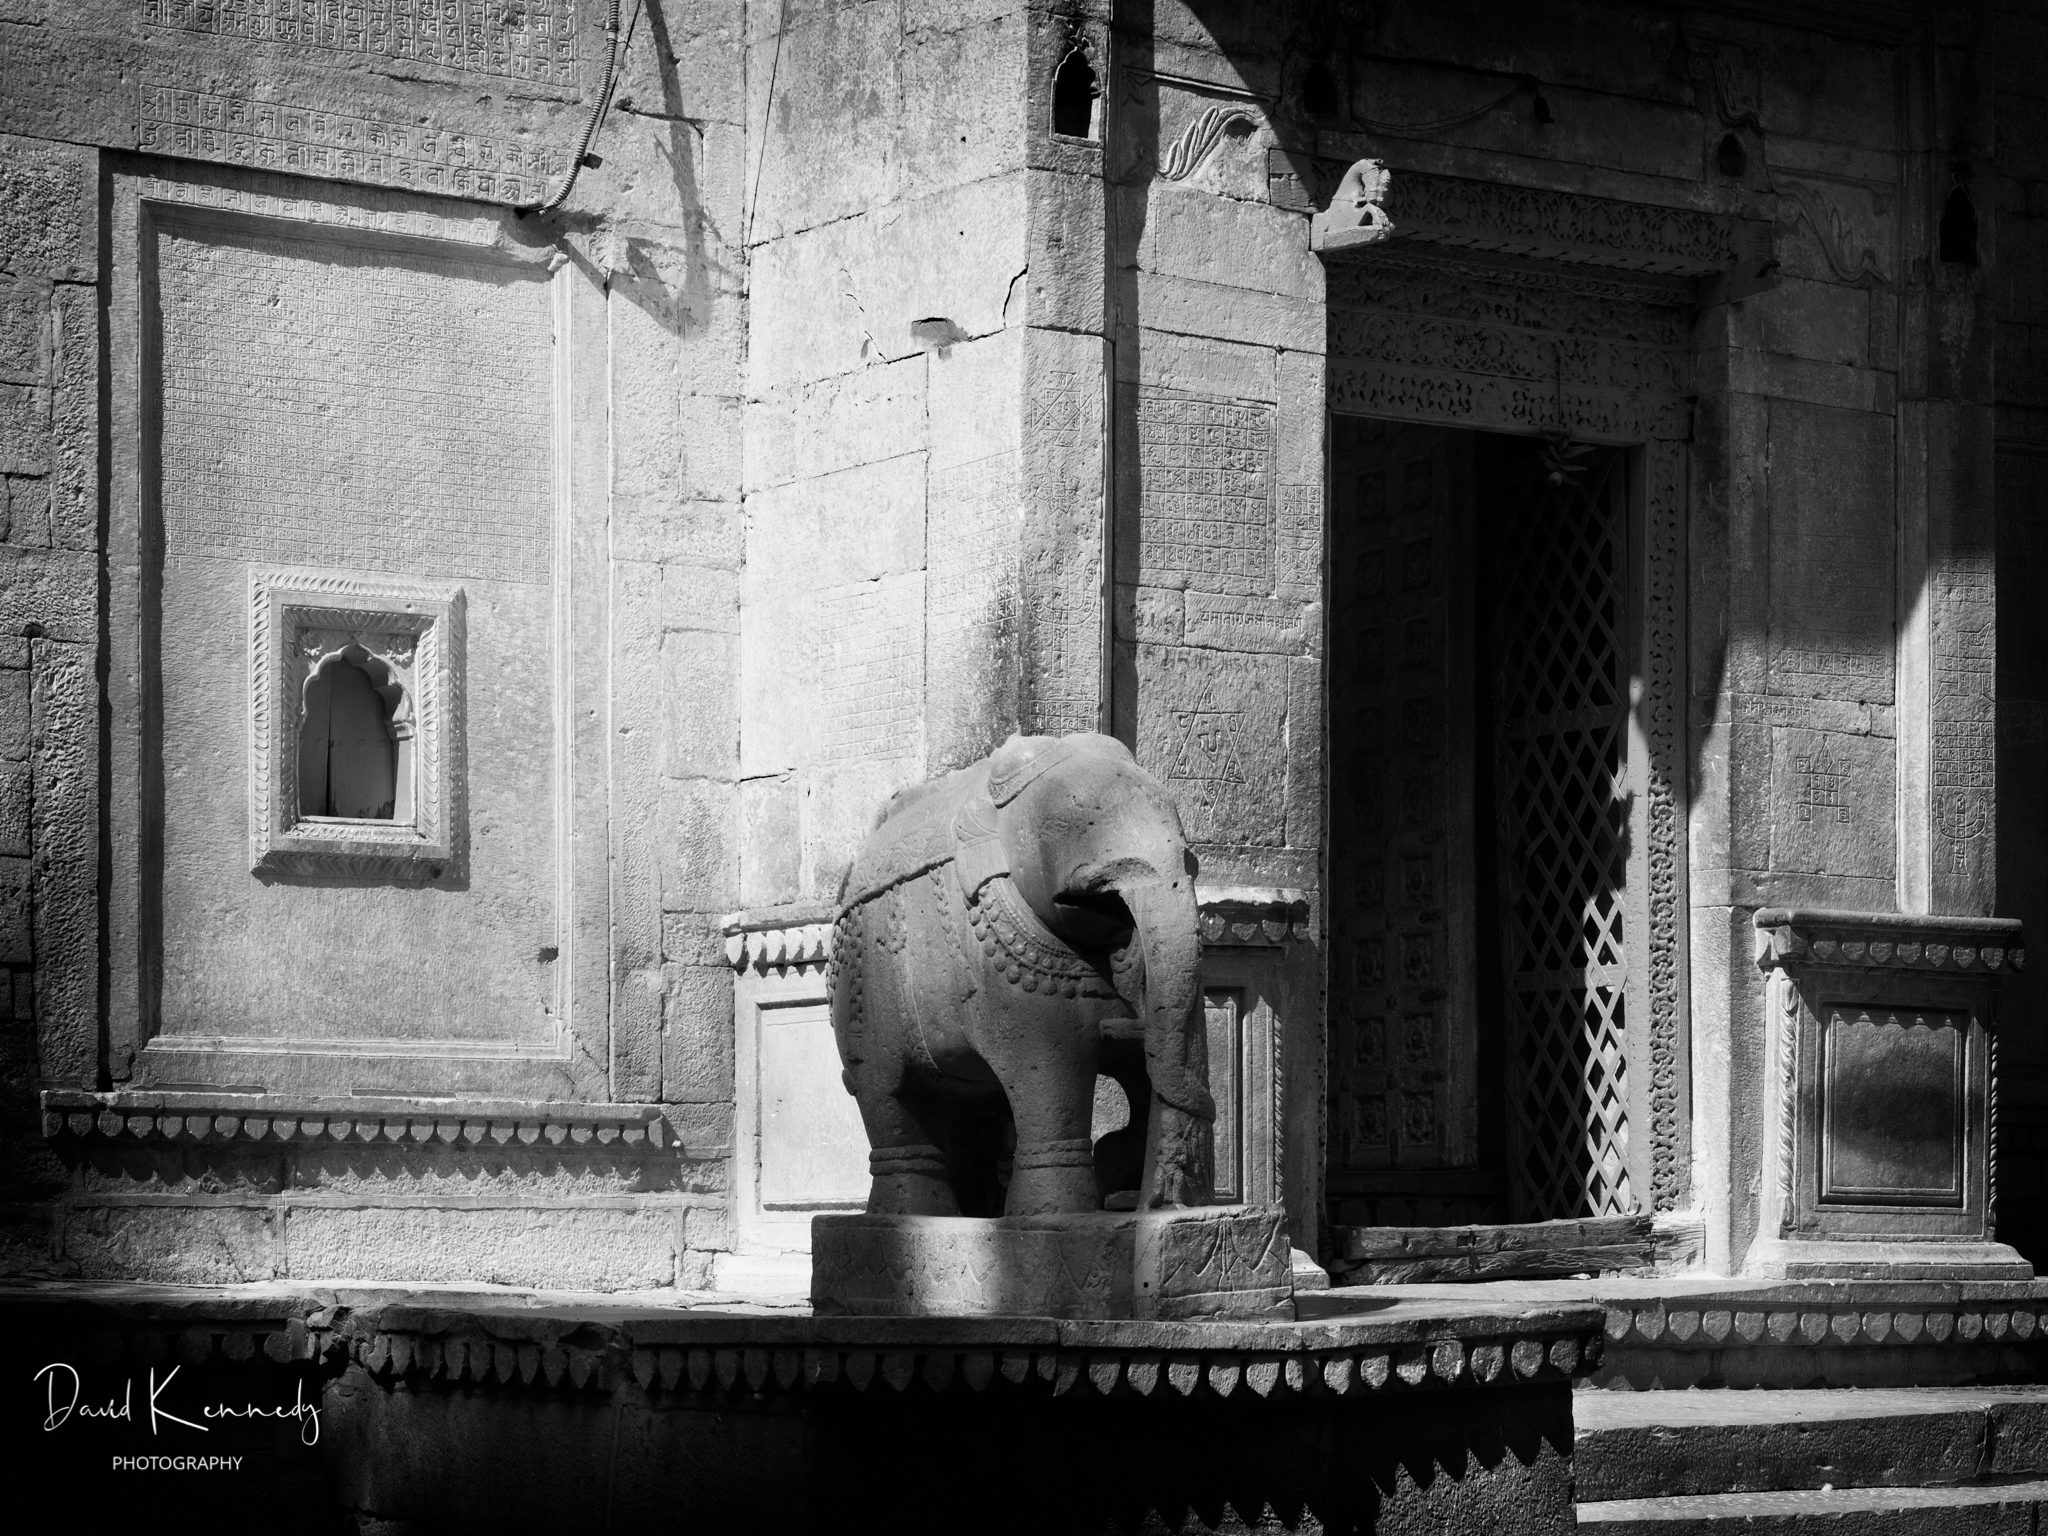 Entrance to a temple with elephant statue in India